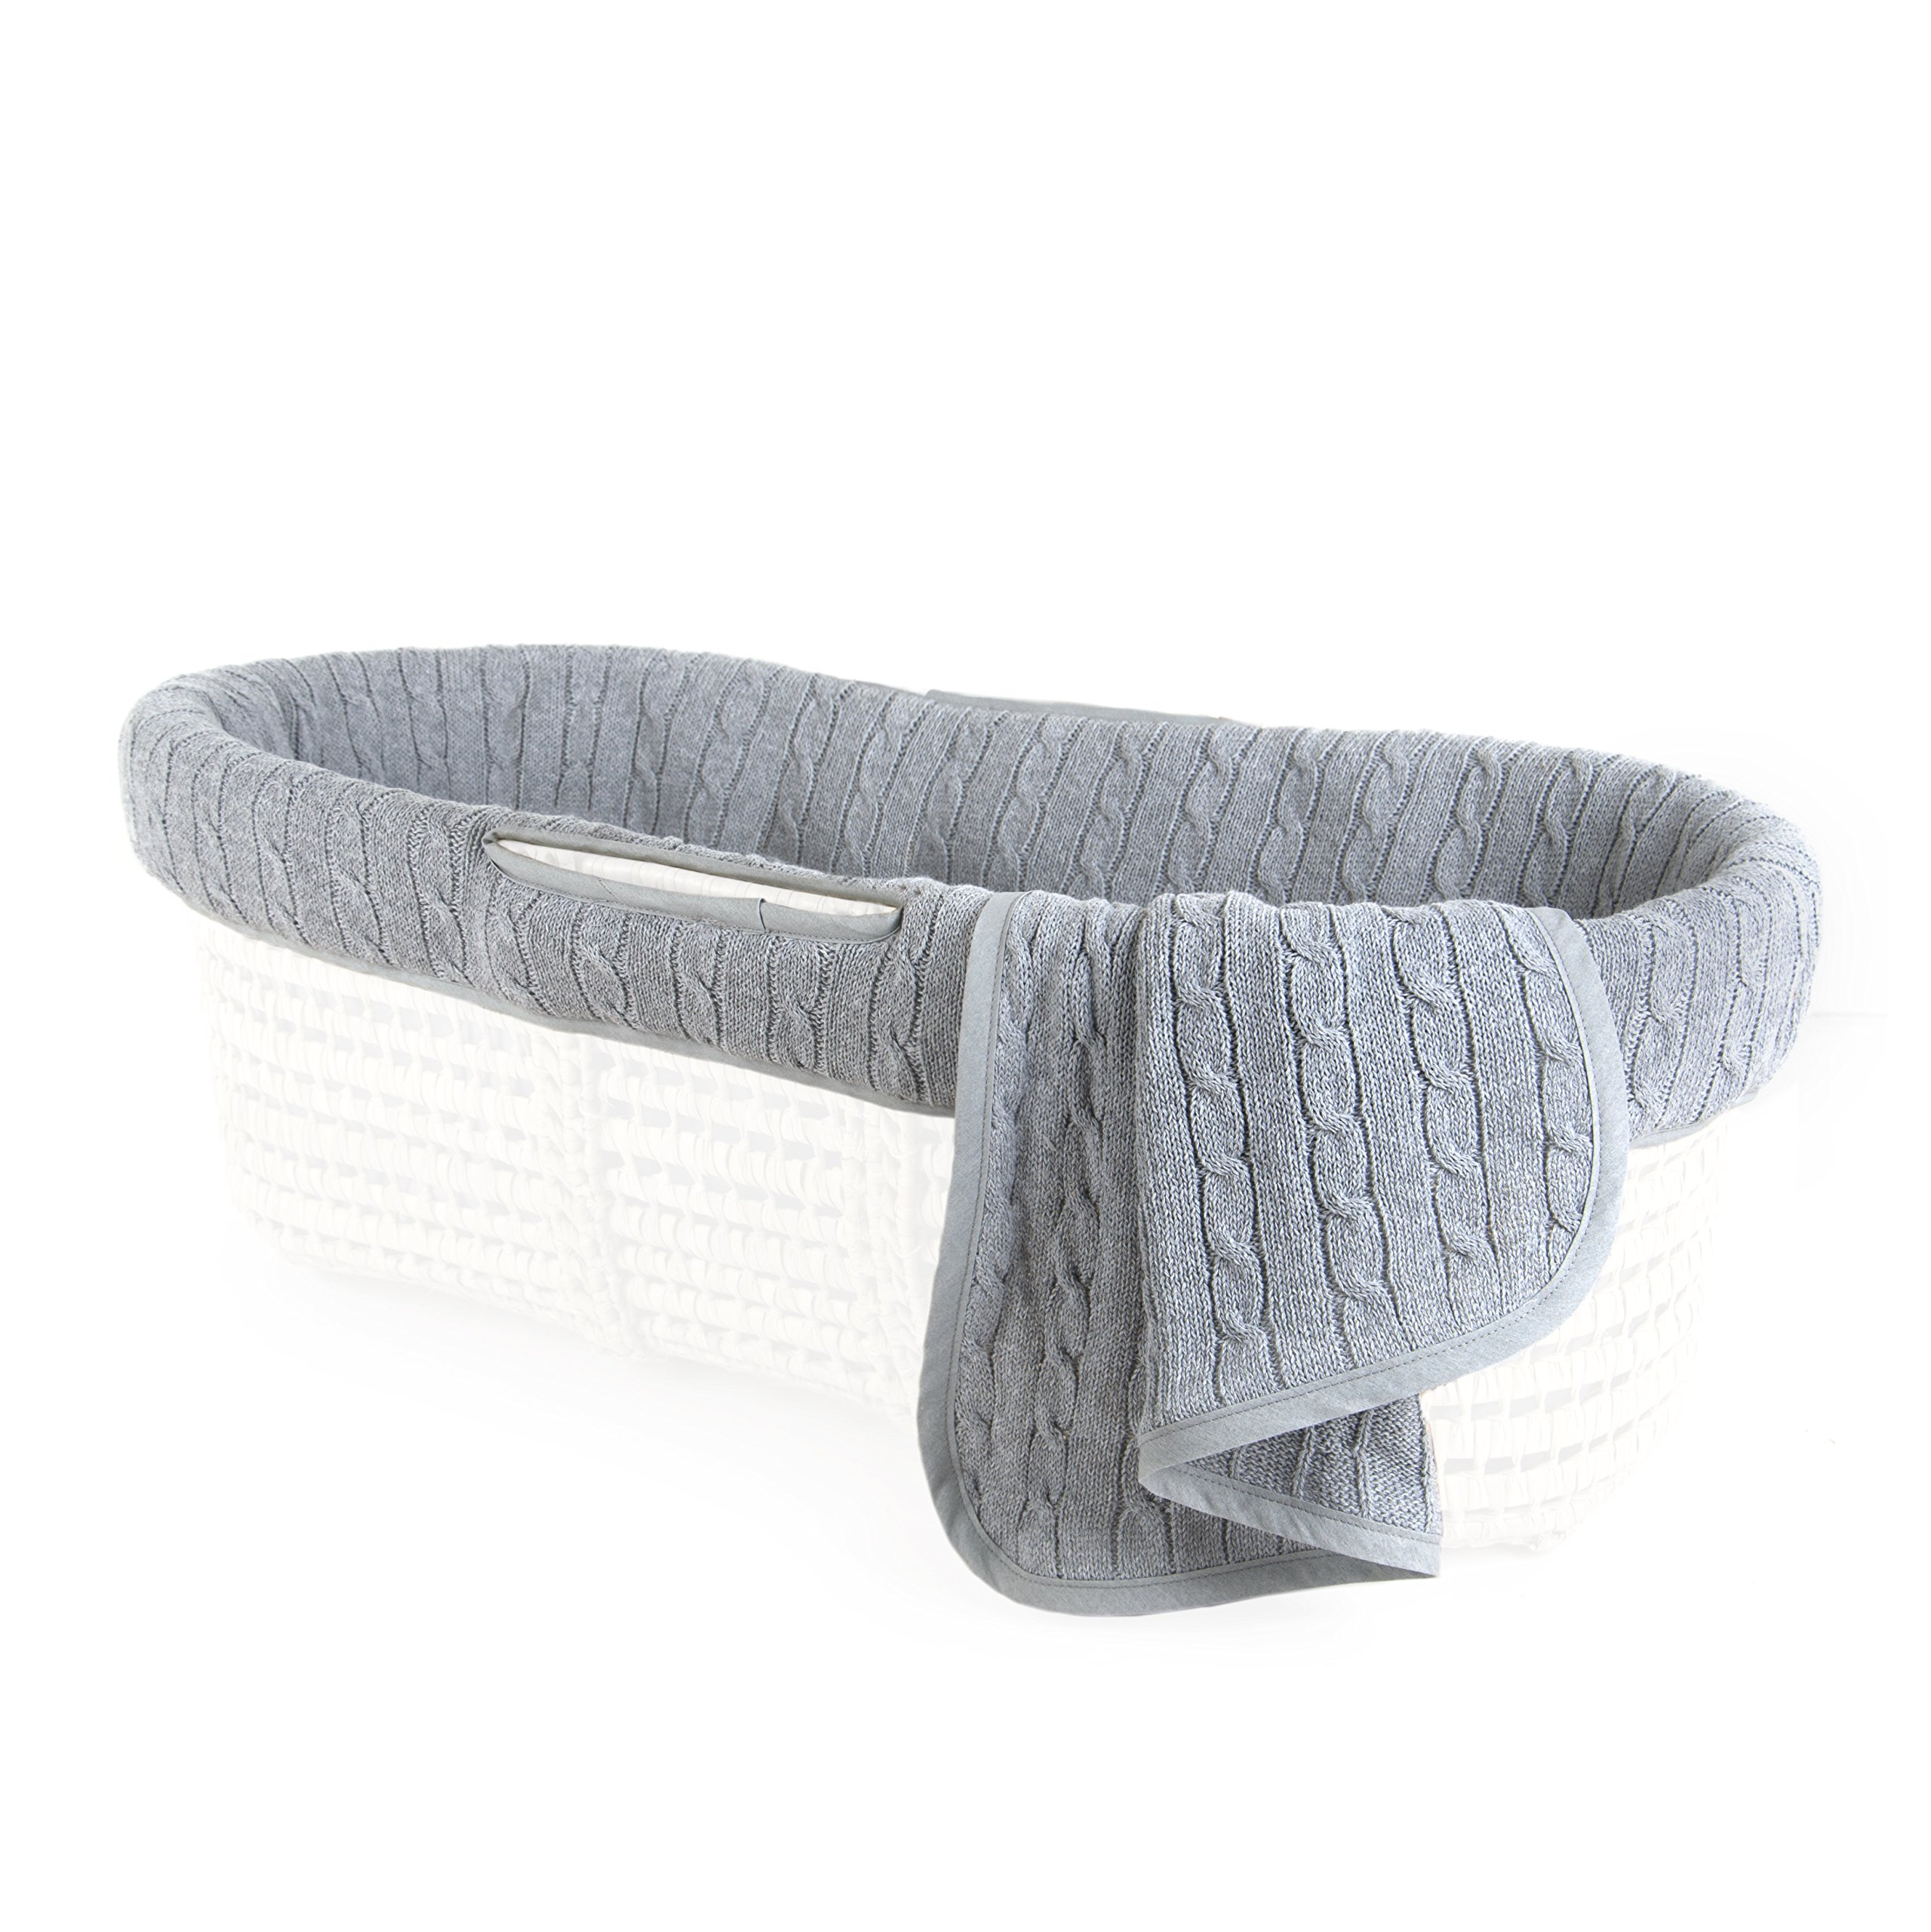 Tadpoles Cable Knit Moses Basket Bedding Only Set, Grey